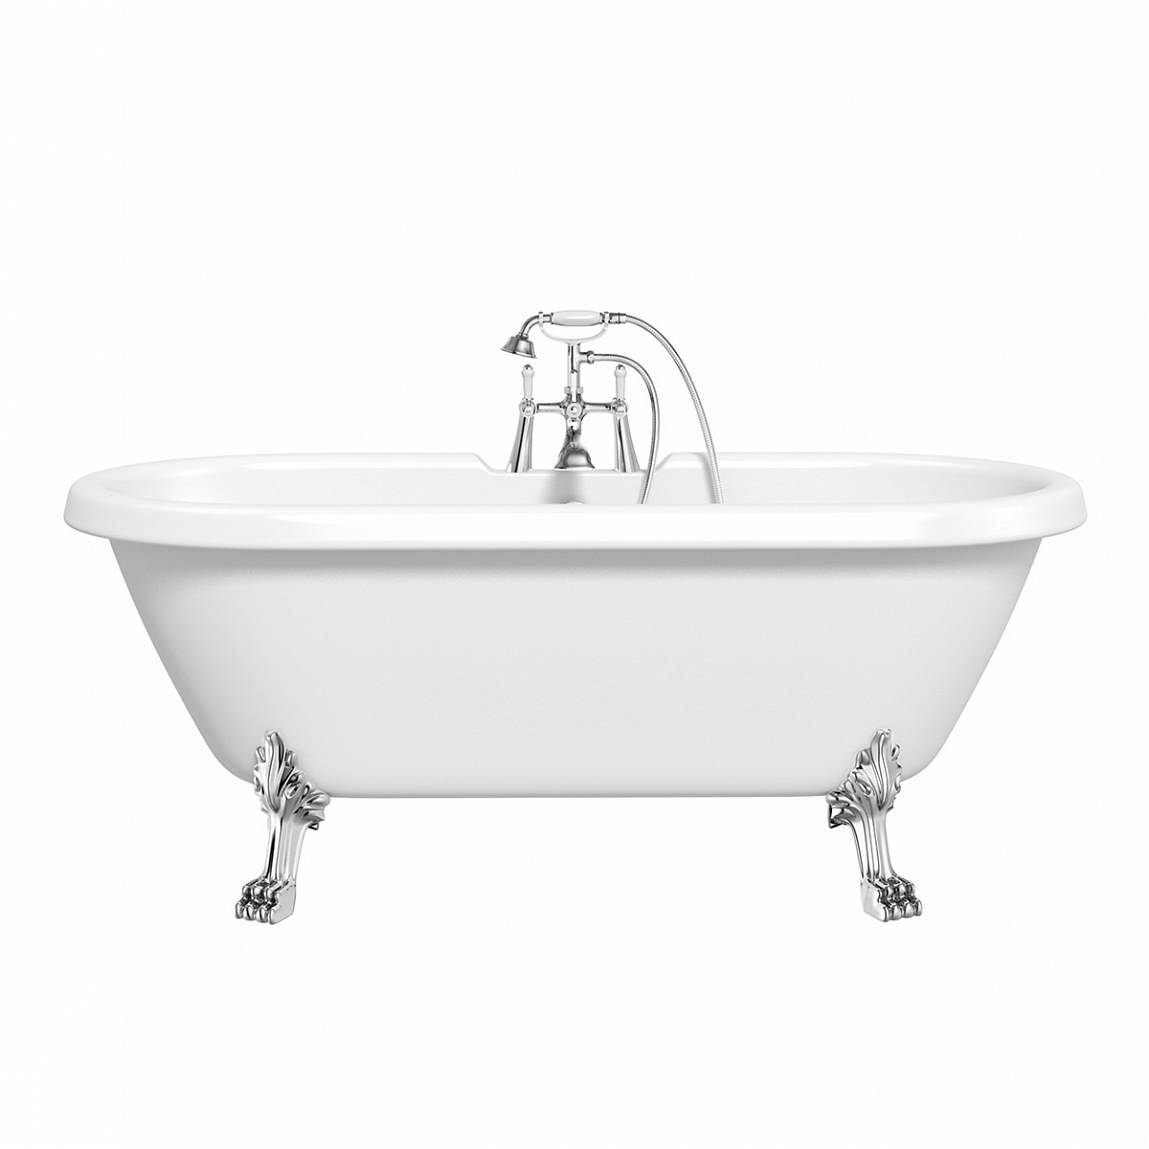 Image of Shakespeare Roll Top Bath Large with Dragon Feet